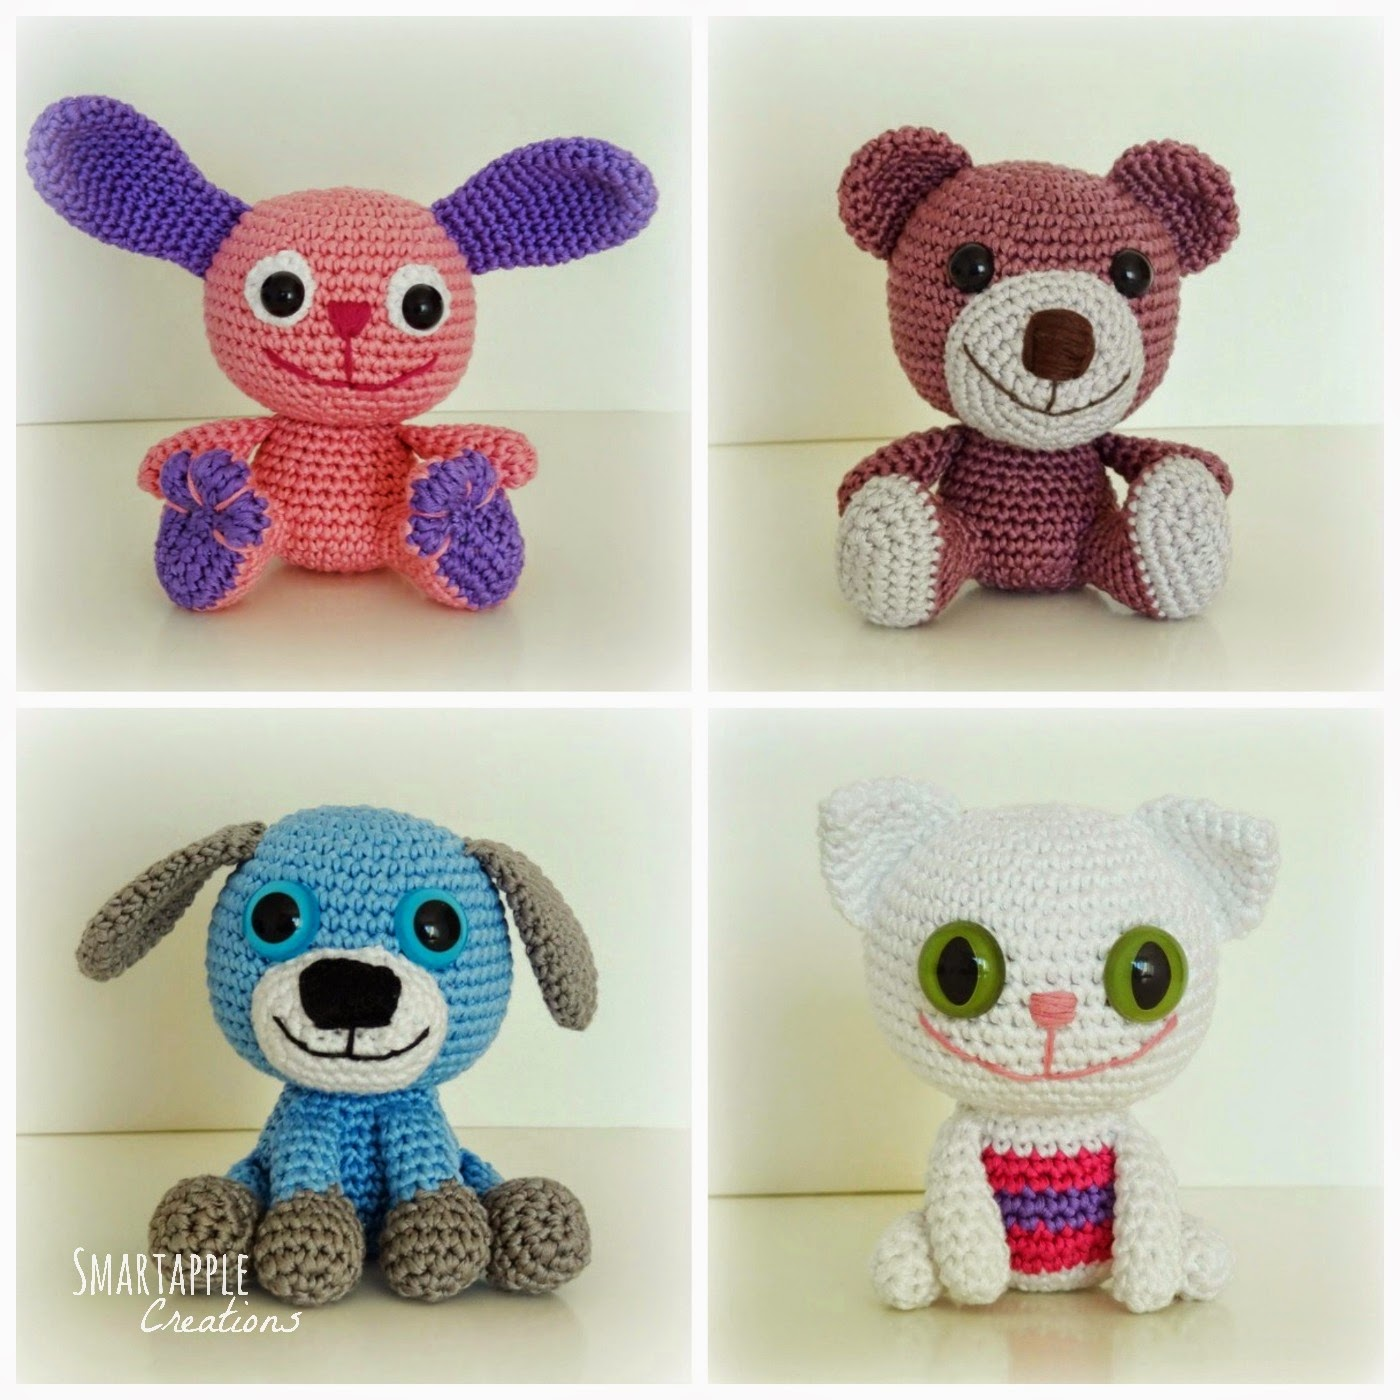 Smartapple Creations - amigurumi and crochet: Crocheted ...